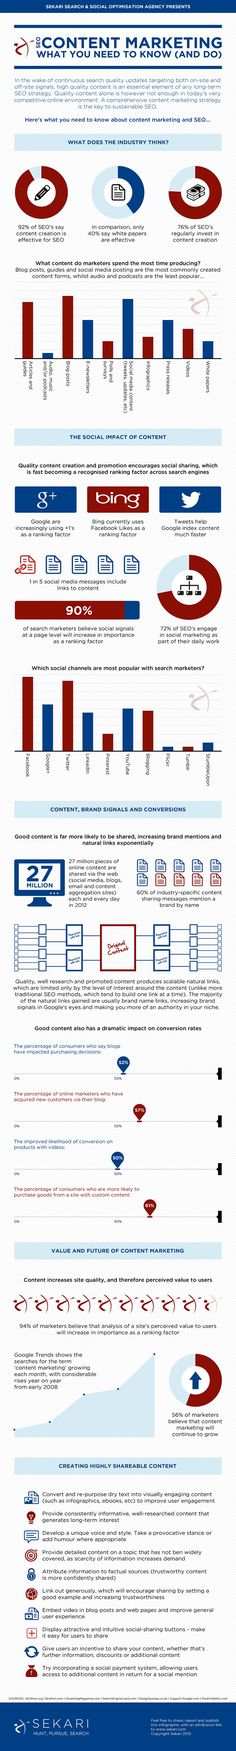 Infographic -- SEO-Content-Marketing---What-You-Need-to-Know-(and-Do)-by-Sekari